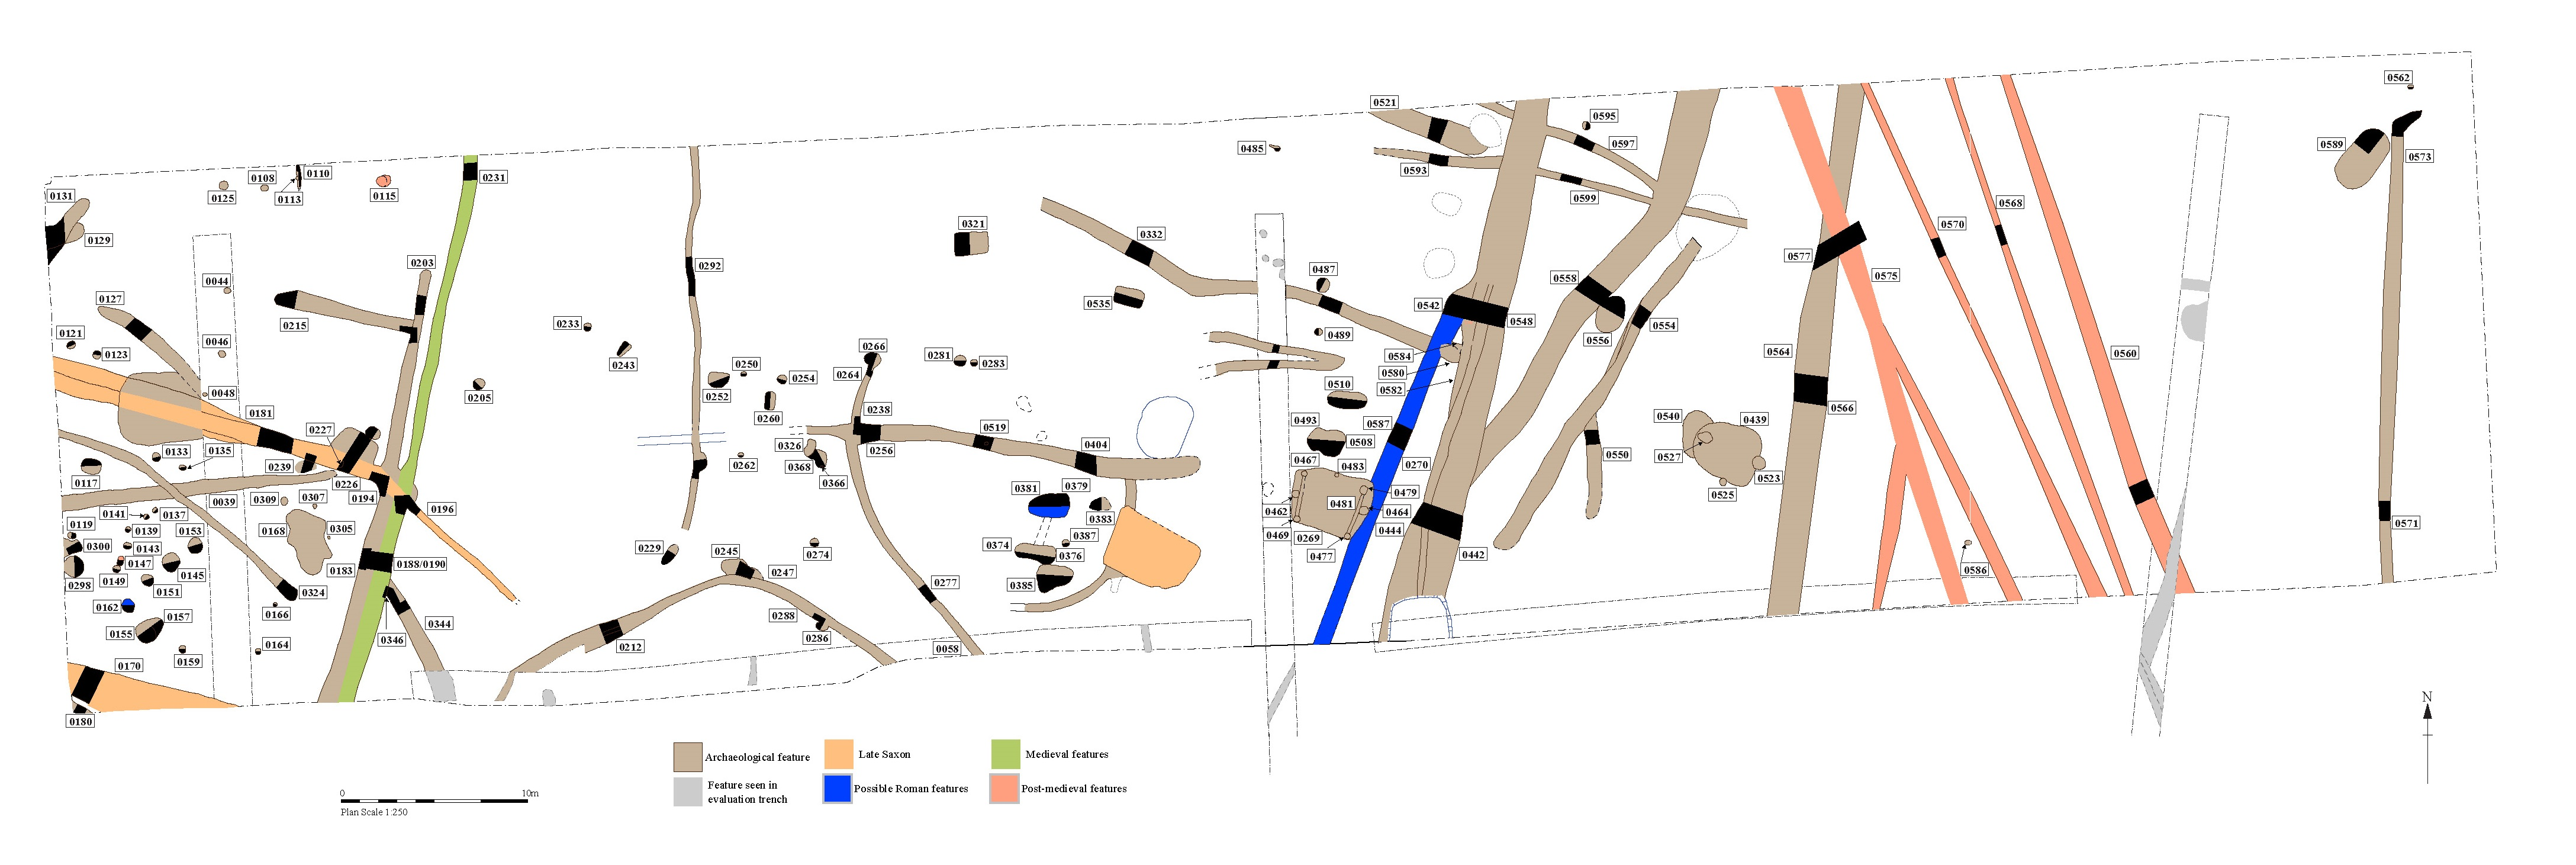 Plan of excavations in 2015 at Culford School, Suffolk